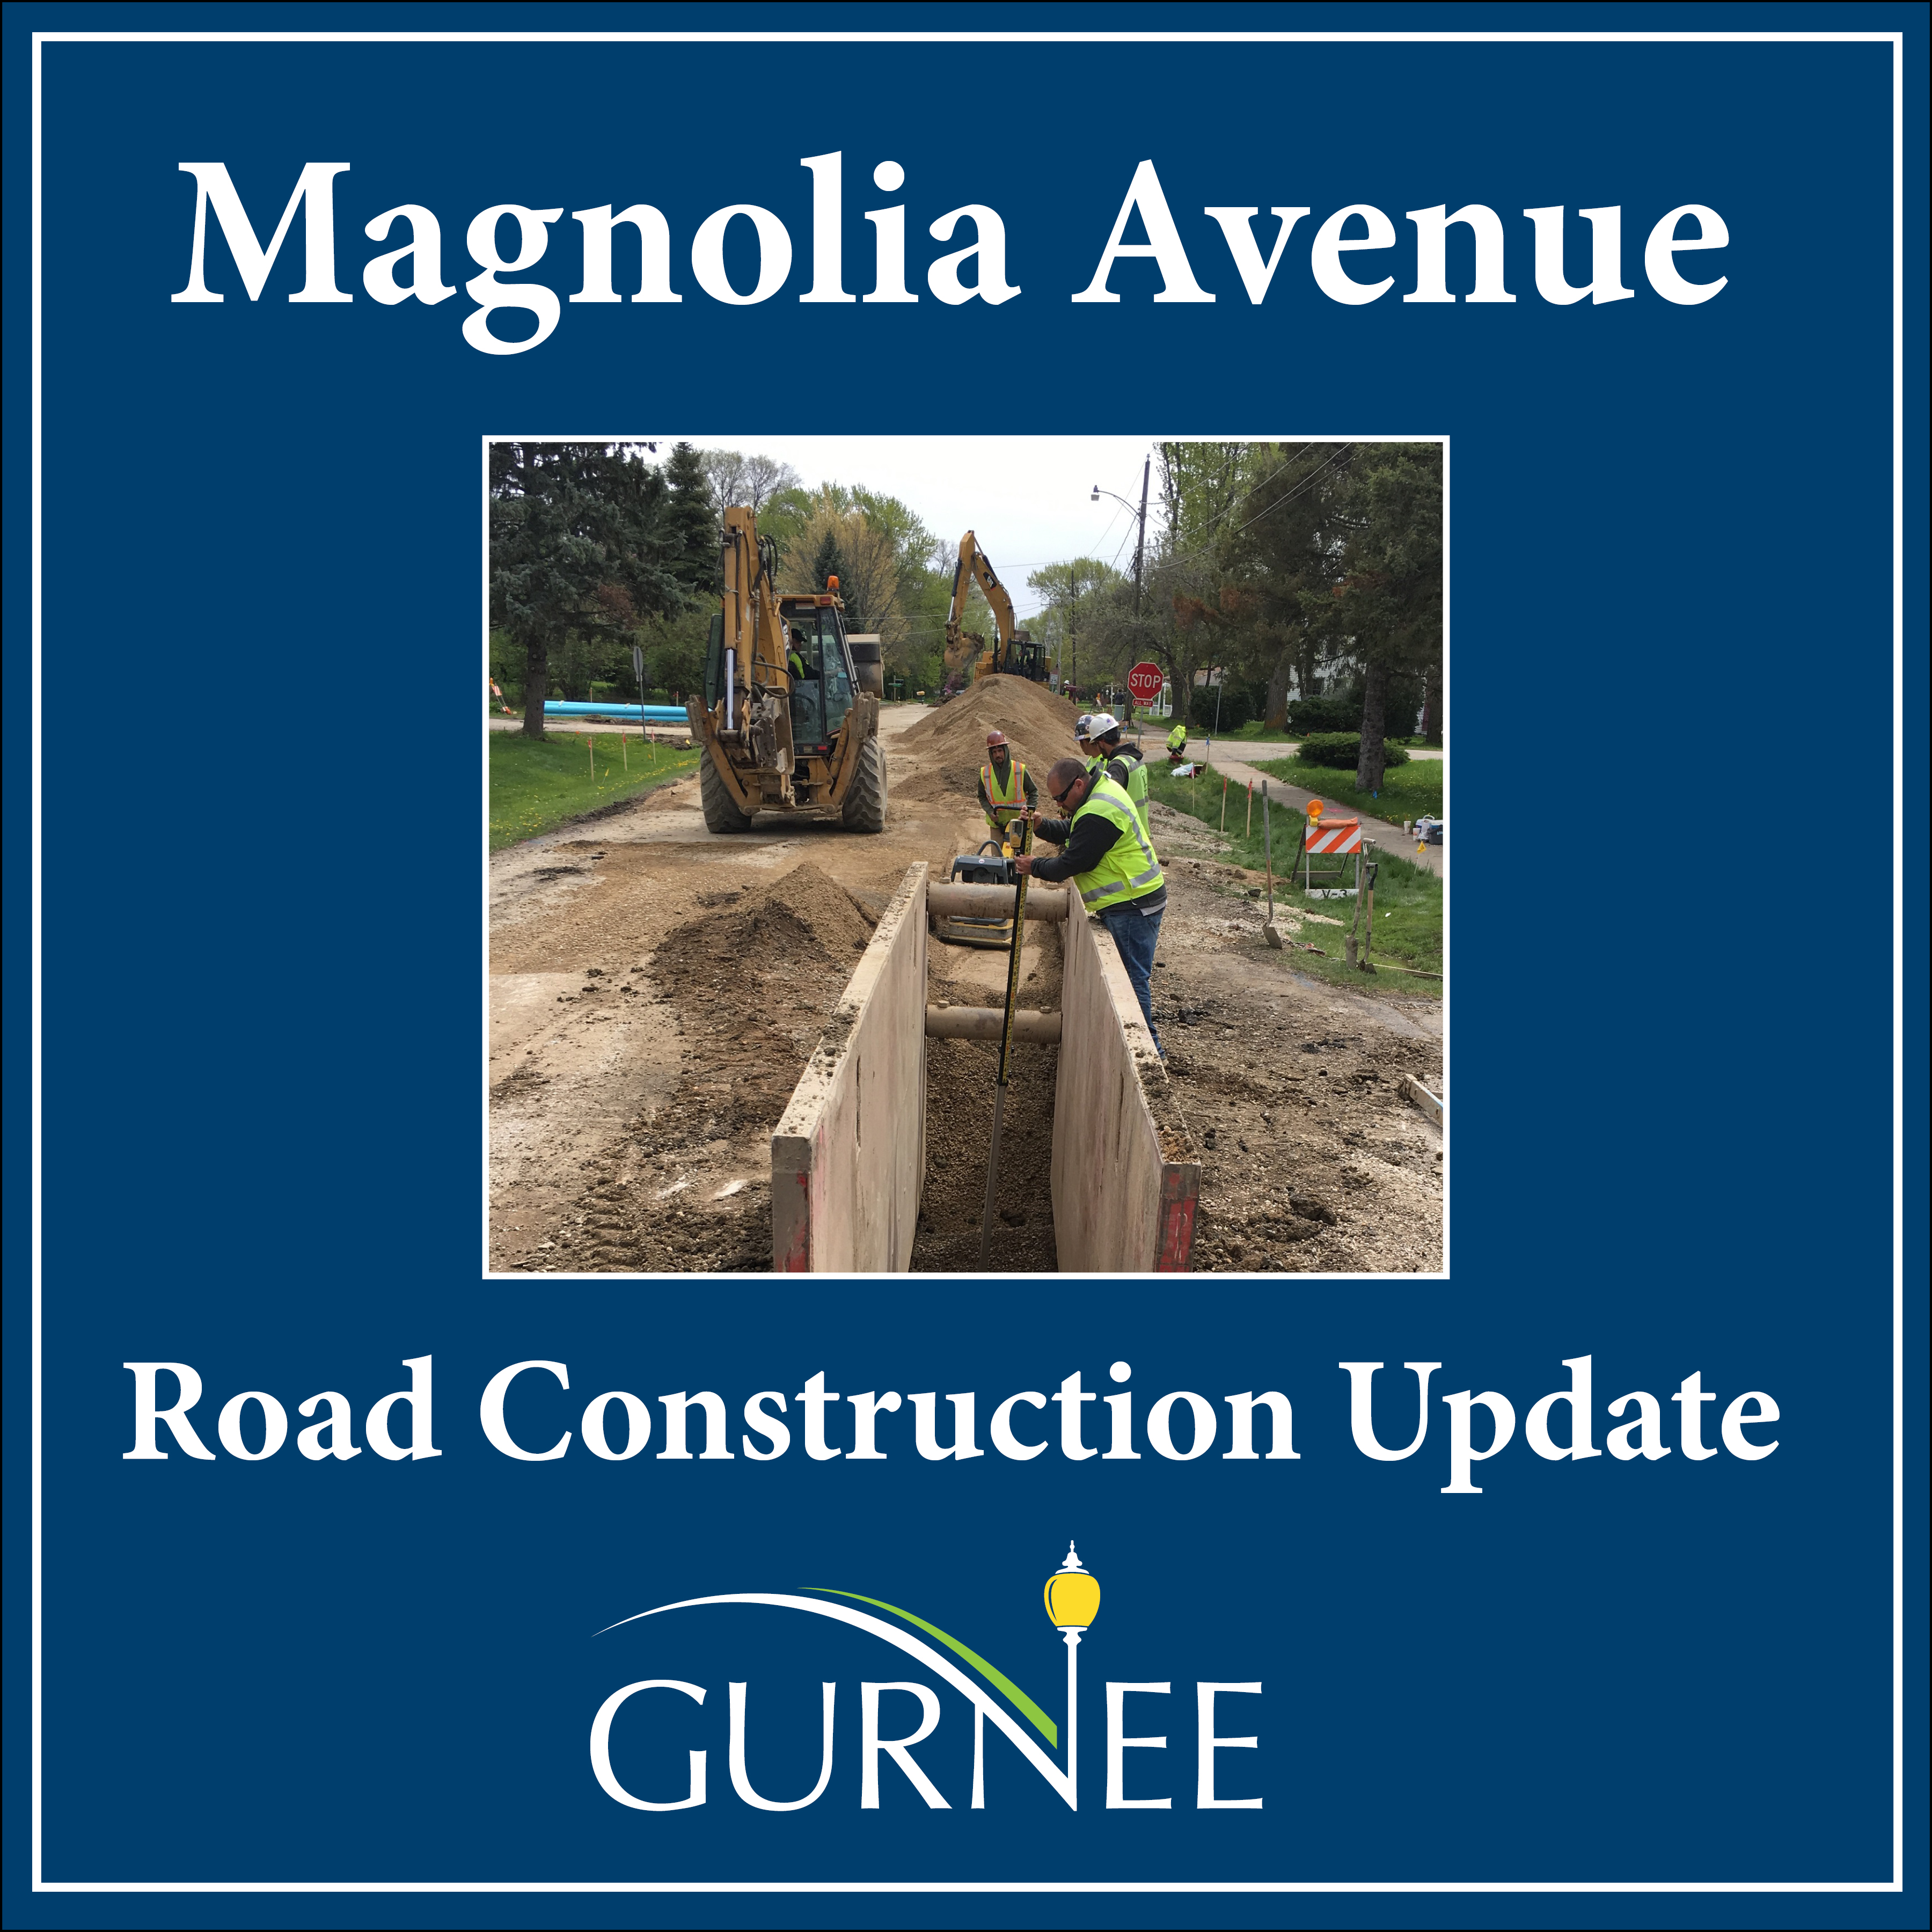 Magnolia Avenue Construction Update